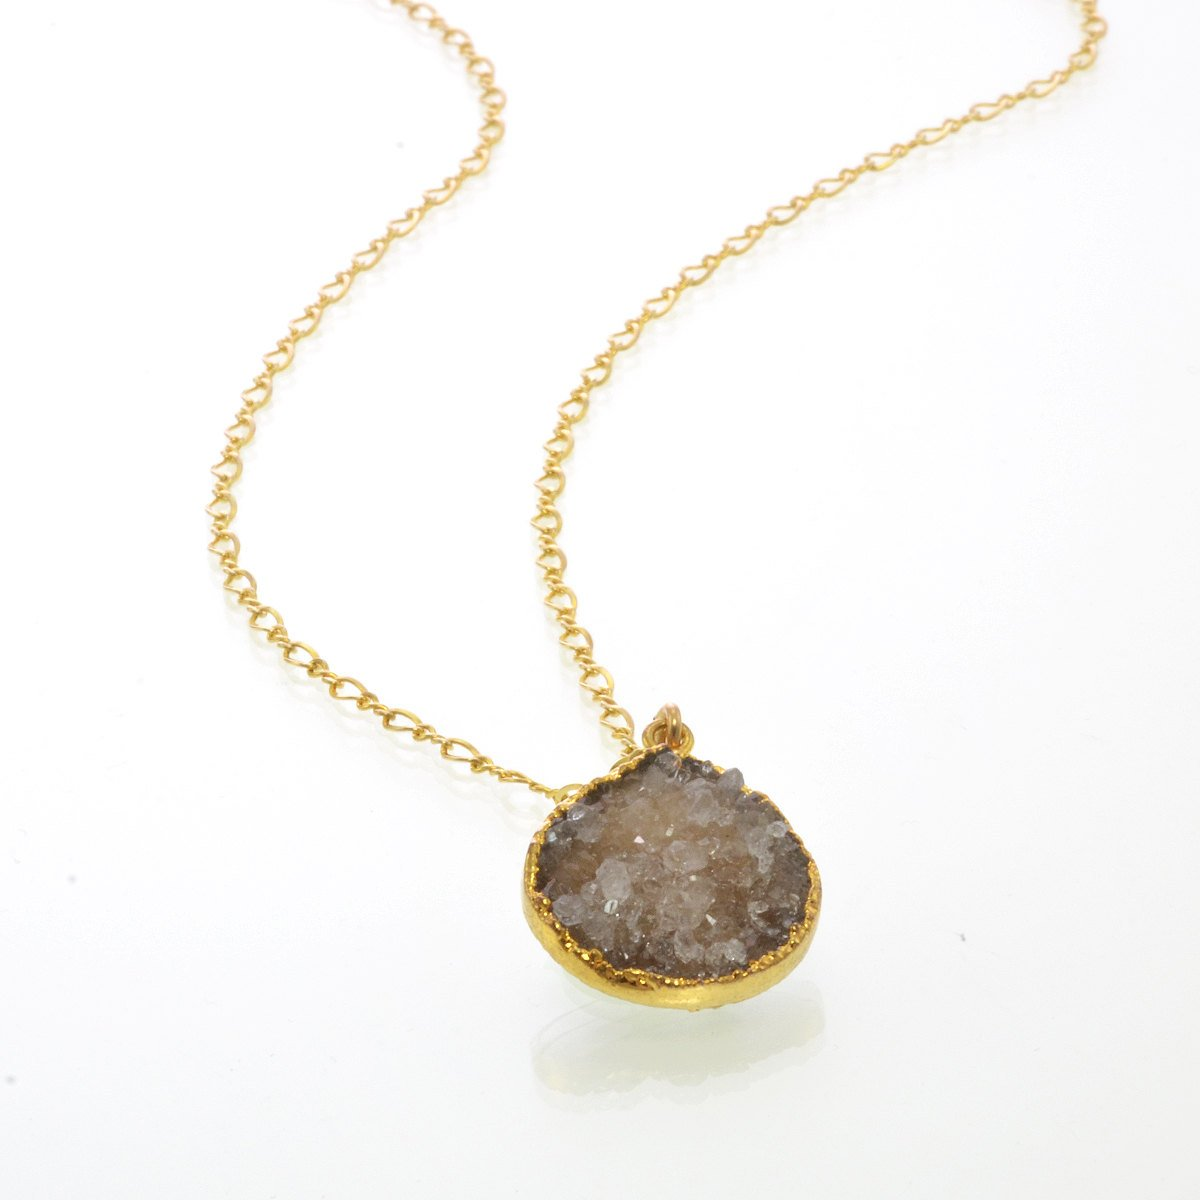 Druzy Necklace - Geode Necklace - Grey Druzy Necklaces - Tear Drop Necklace - Druzy Gold Filled Necklace - Genuine Simple Gemstone Necklace